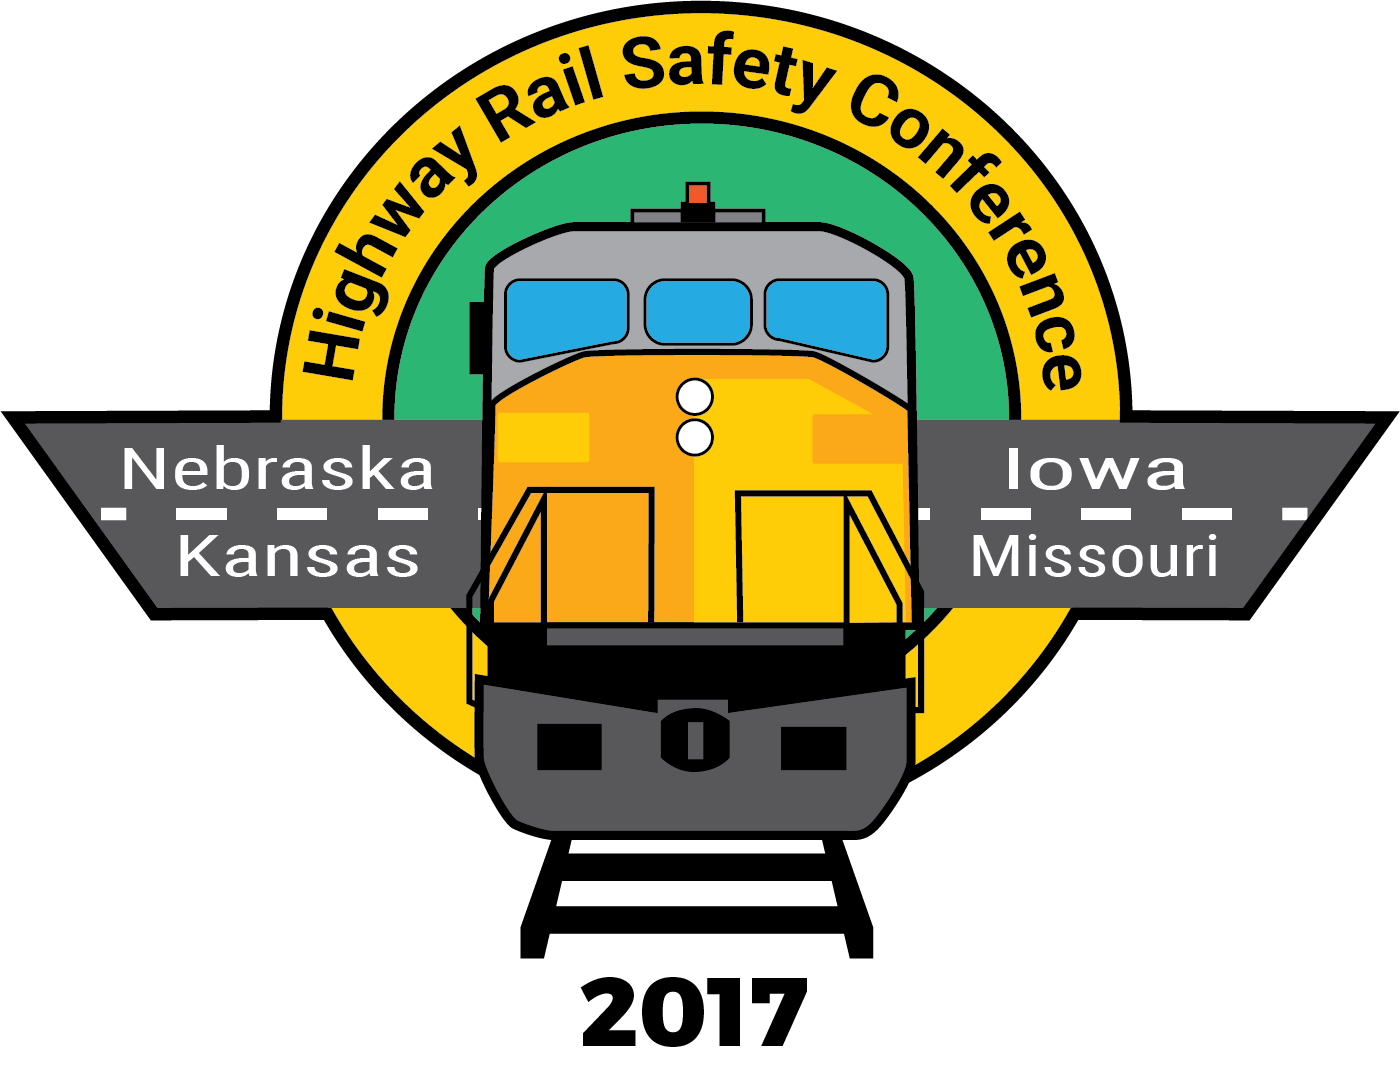 Clipart road scenic drive. Highway rail safety conference